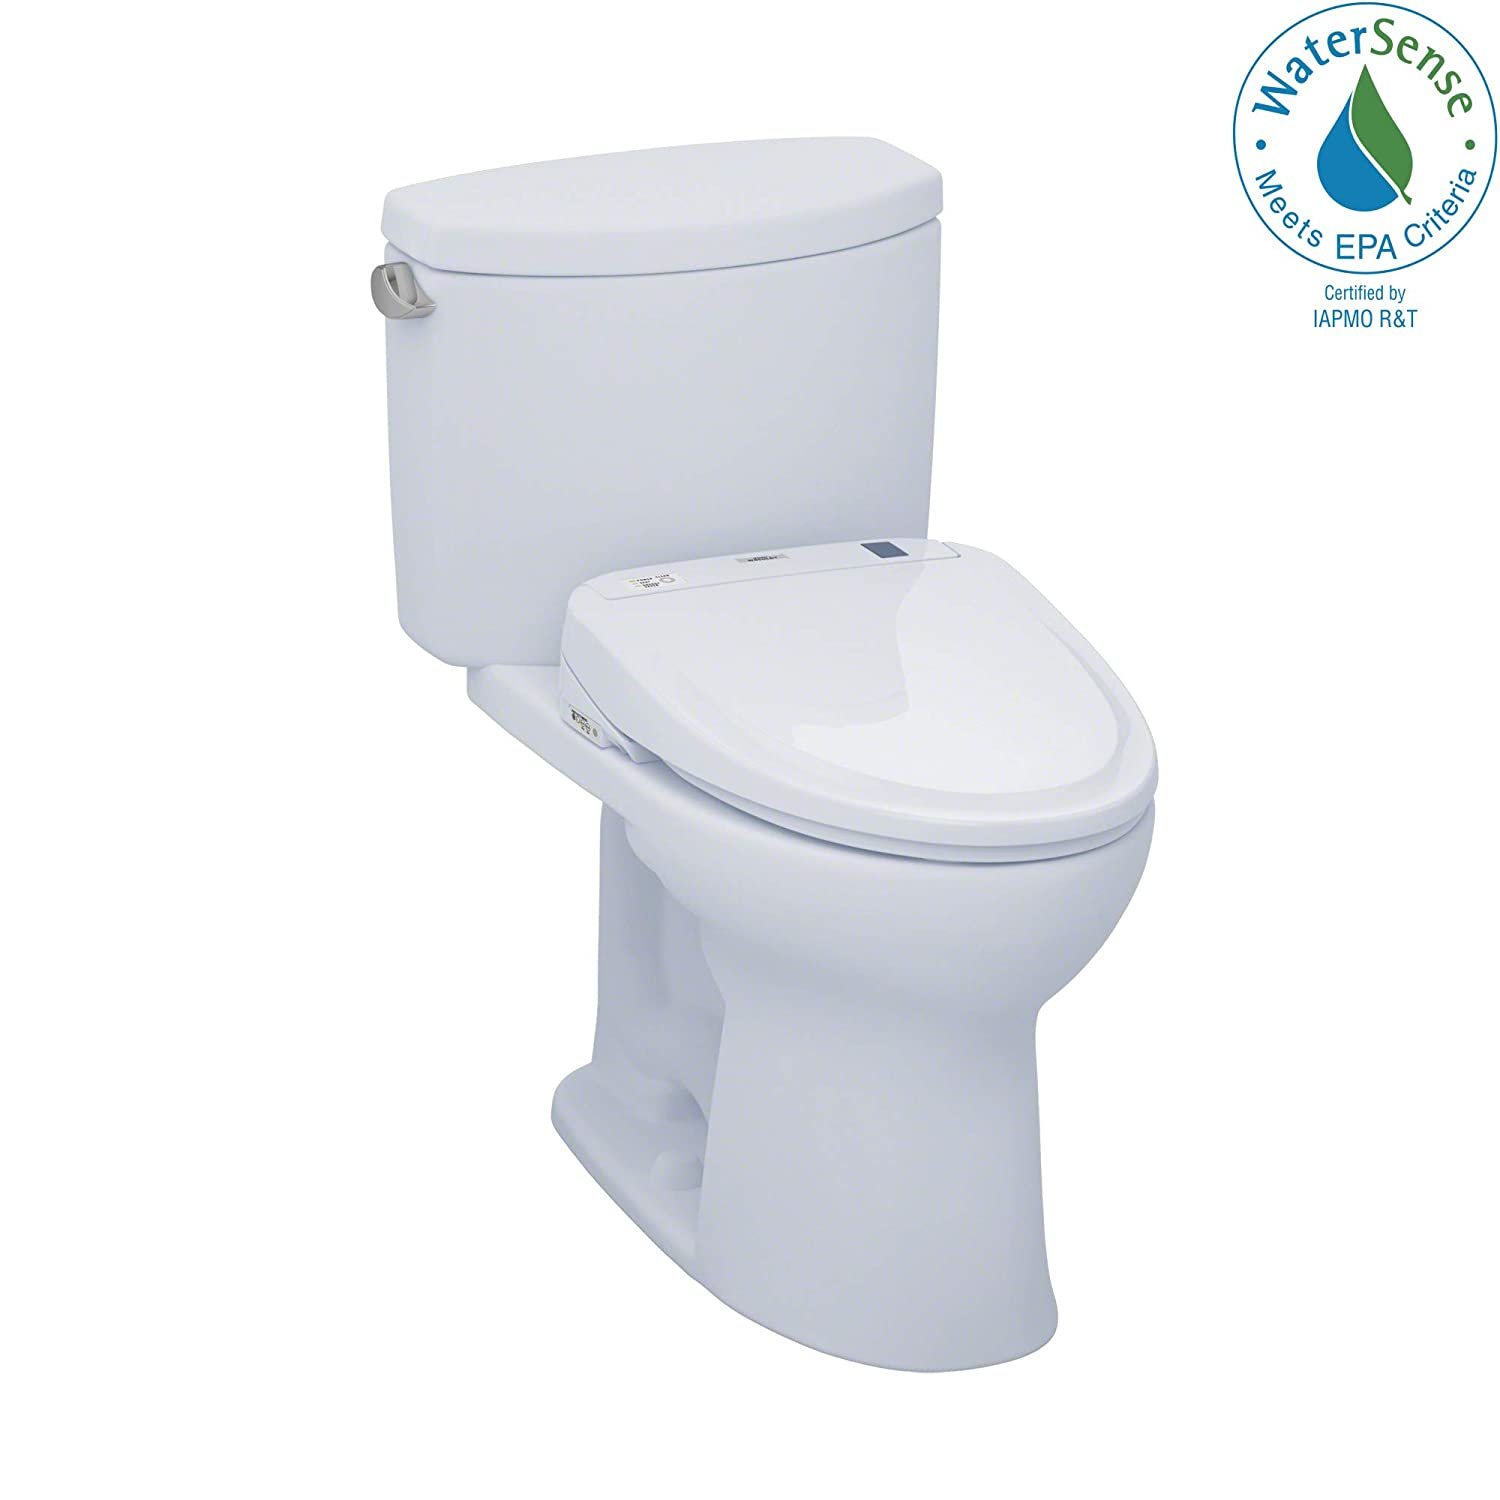 TOTO MW454574CEFG#01 S300e WASHLET+ Kit, Drake II Elongated 1.28 GPF